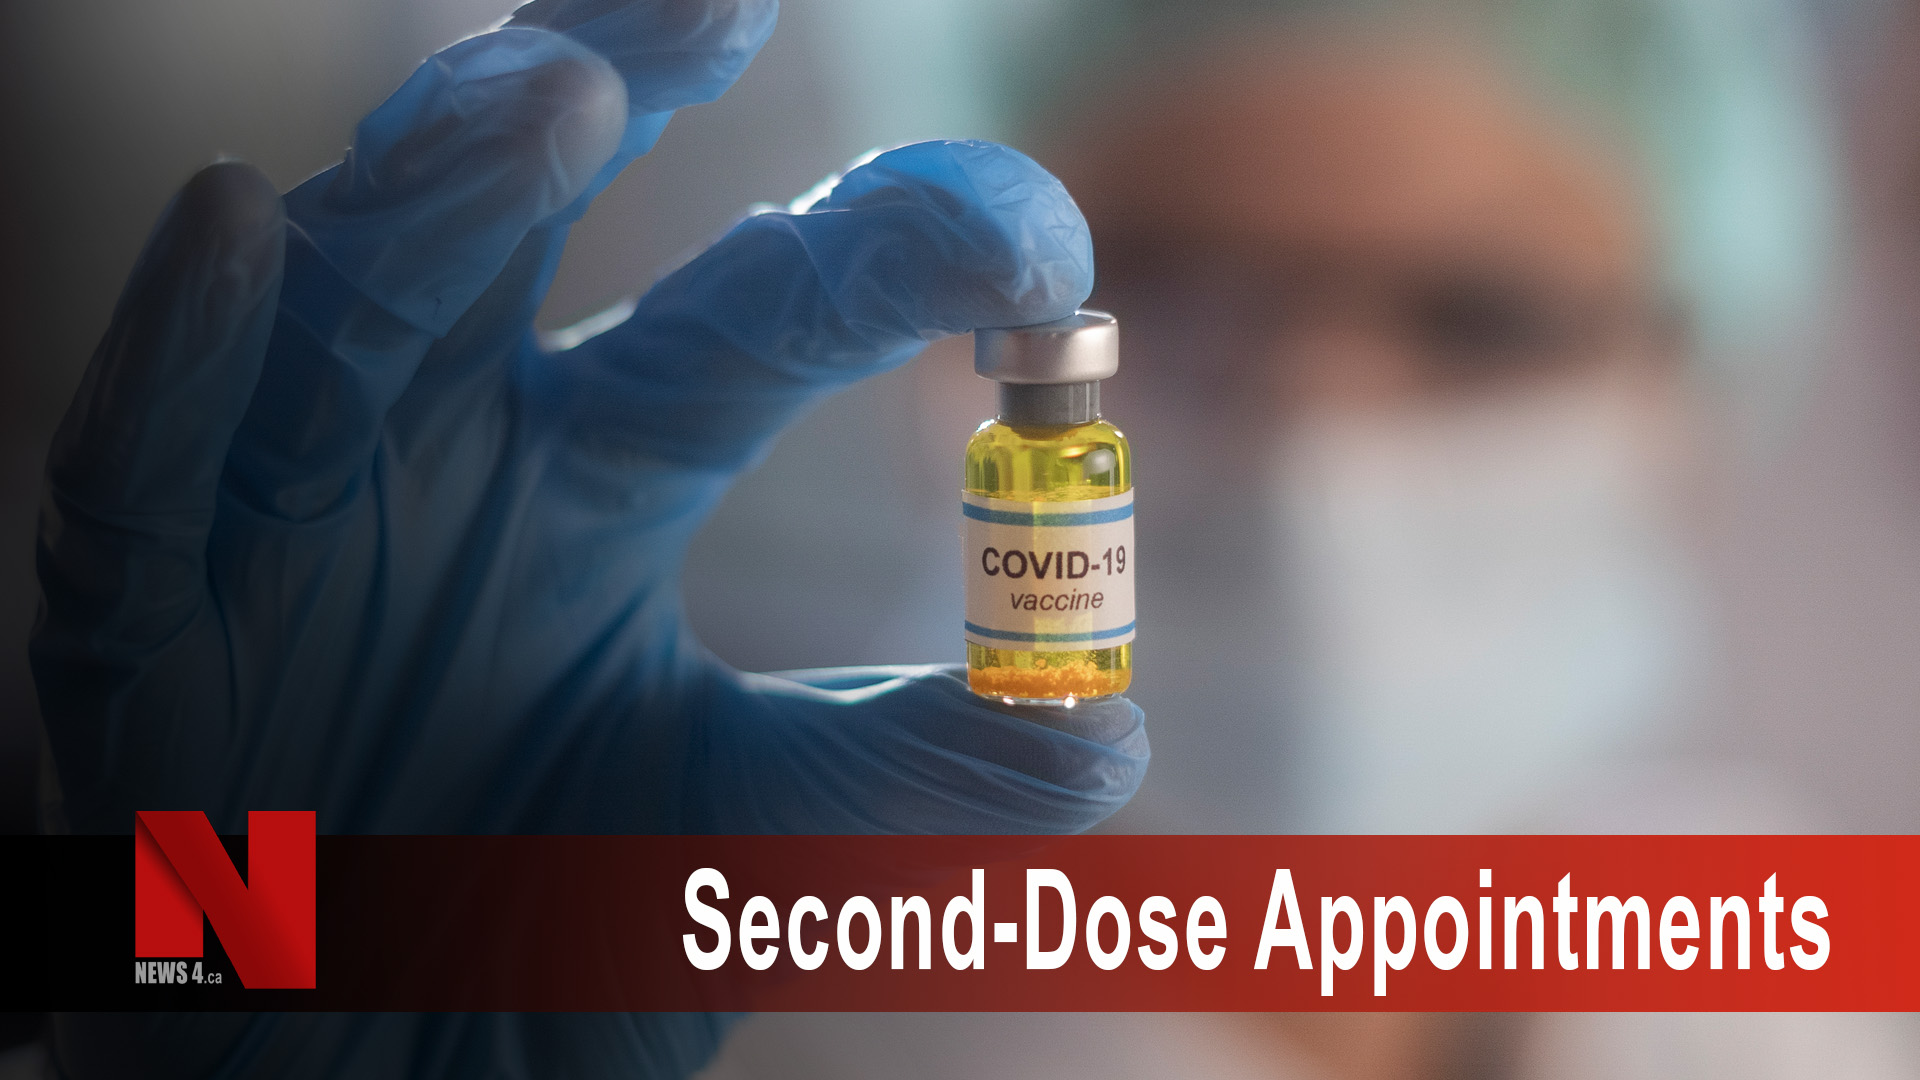 Second-dose Appointments